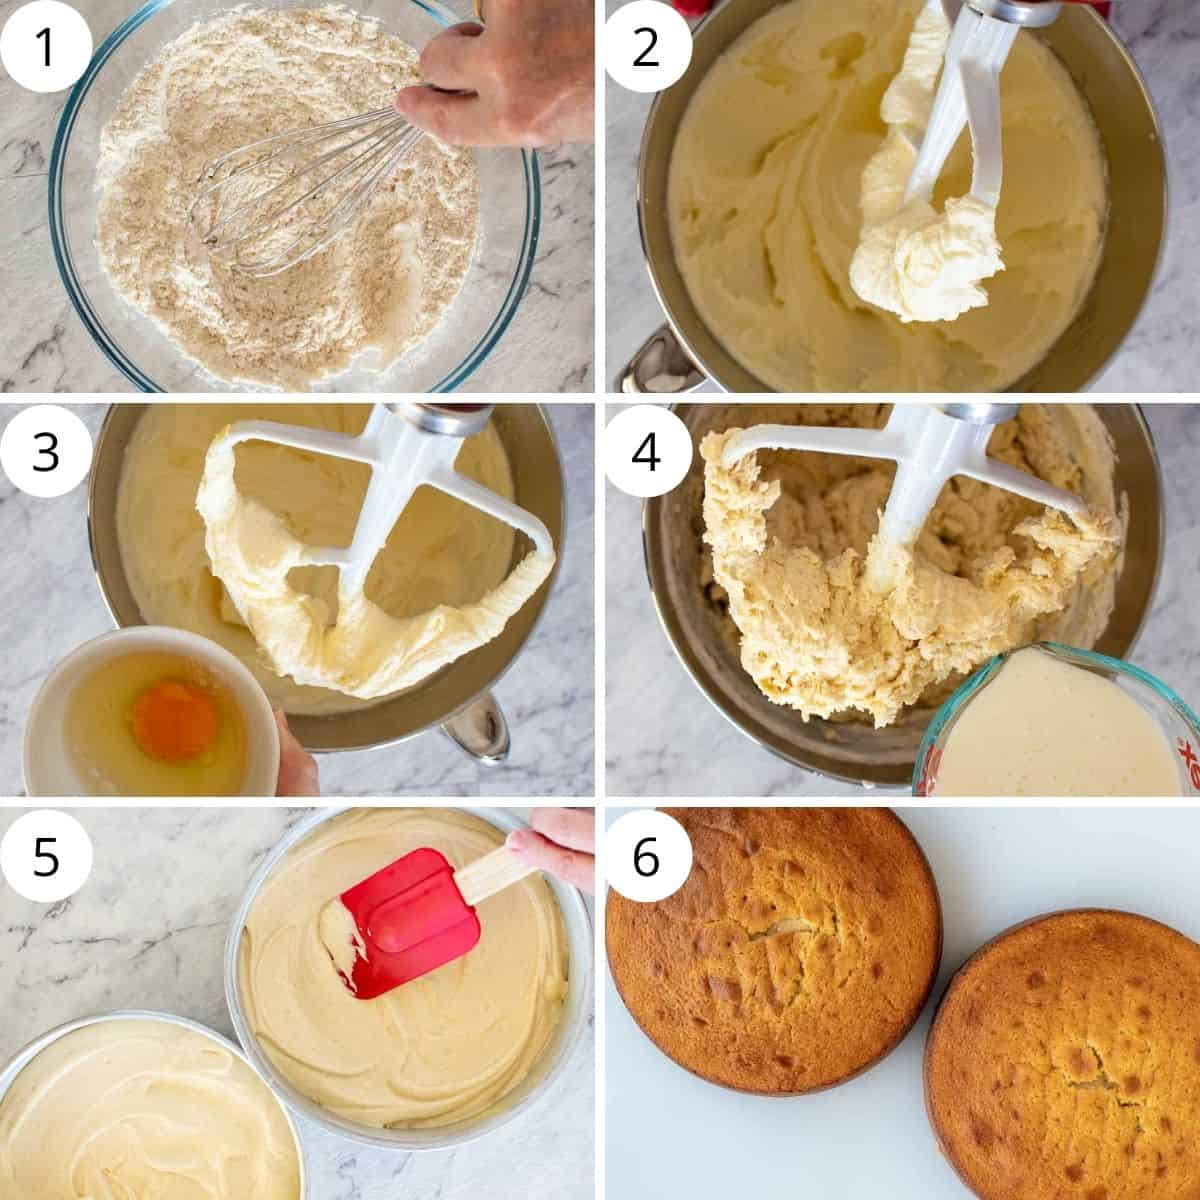 six-step photo collage showing how to bake cannoli cake.